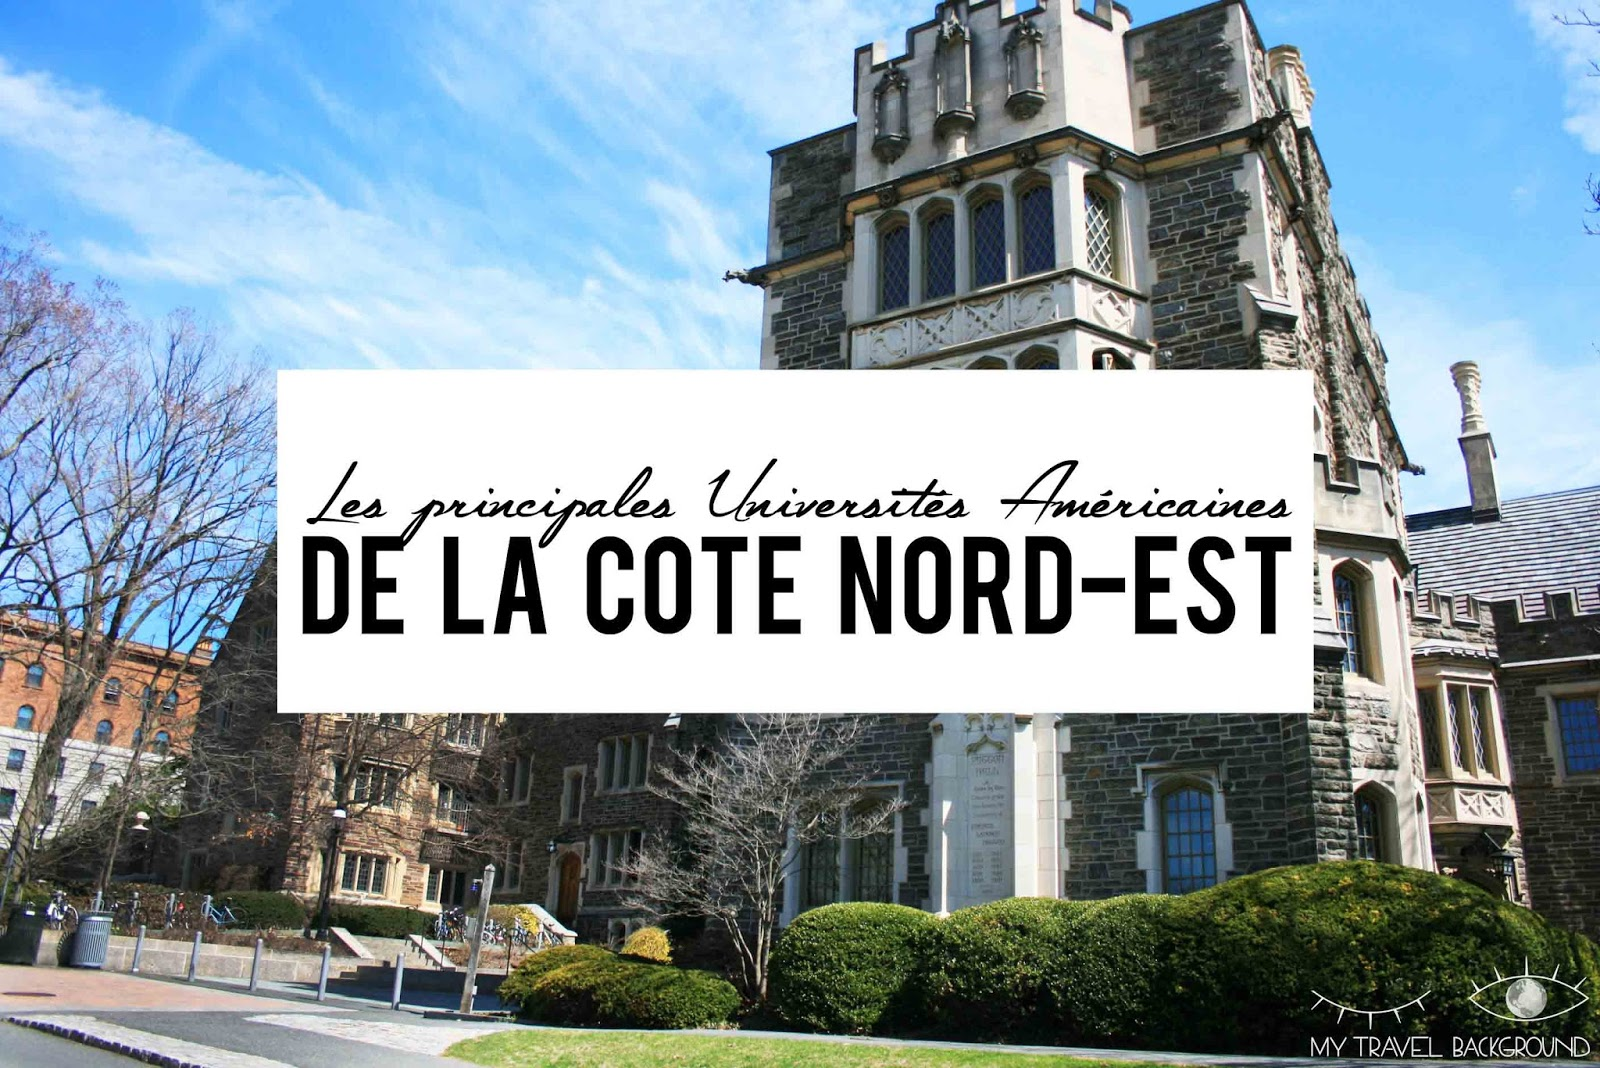 My Travel Background : Les principales universités américaines de la côte Nord-Est